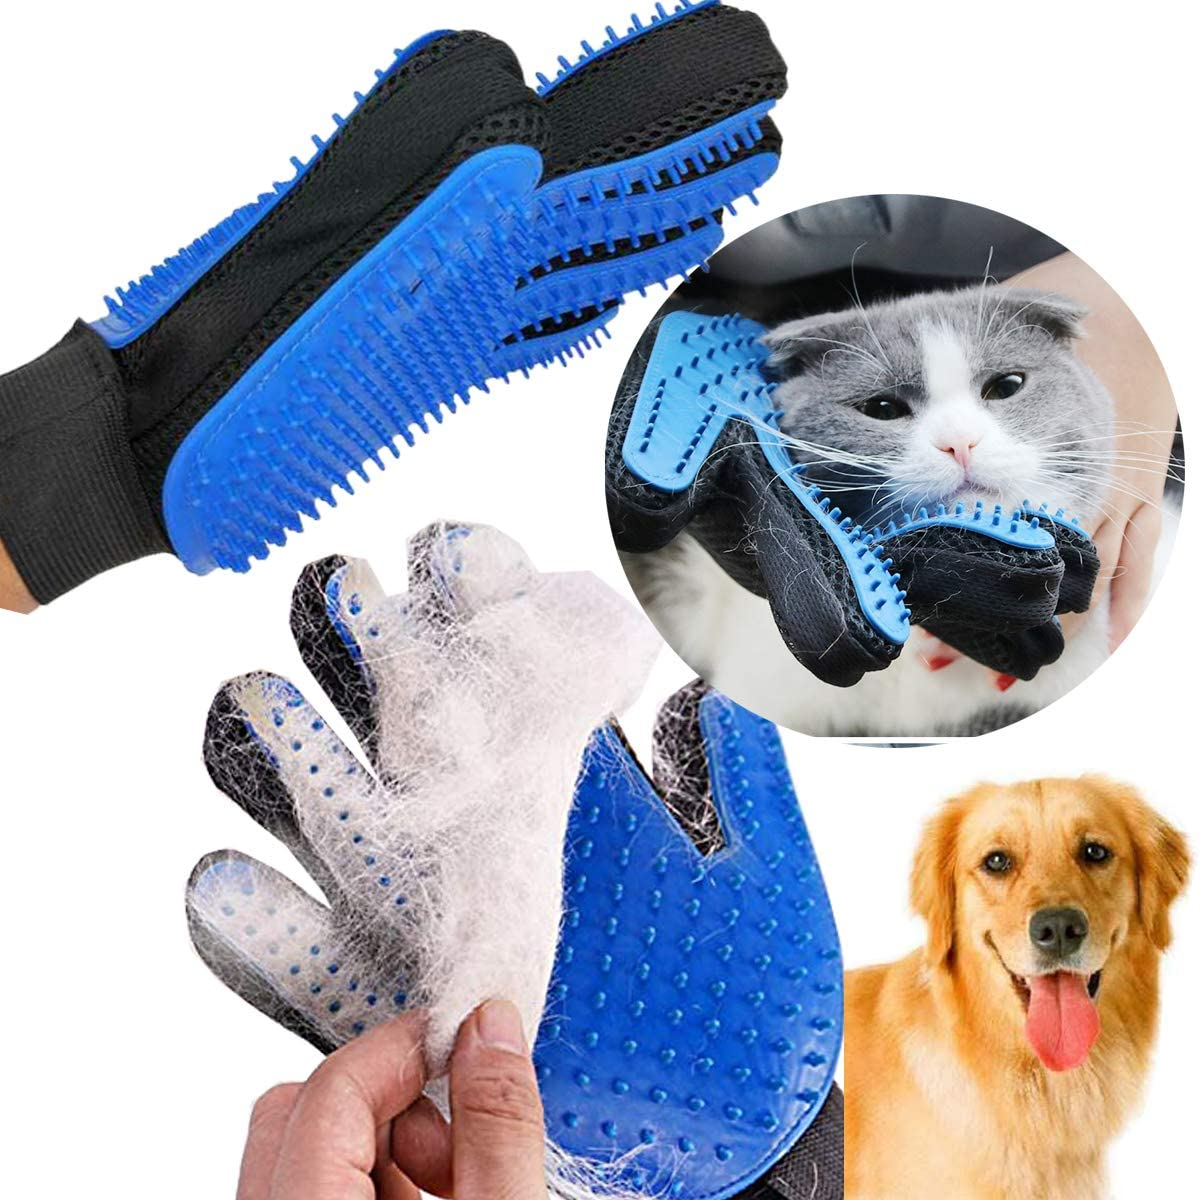 [NEW UPGRADE] Pet Gloves-Gentle Hair Removal Brush Efficient Gloves-Enhanced five-finger design Double-sided can be used on both hands-Perfect for cats and dogs with long and short hair(1pck)